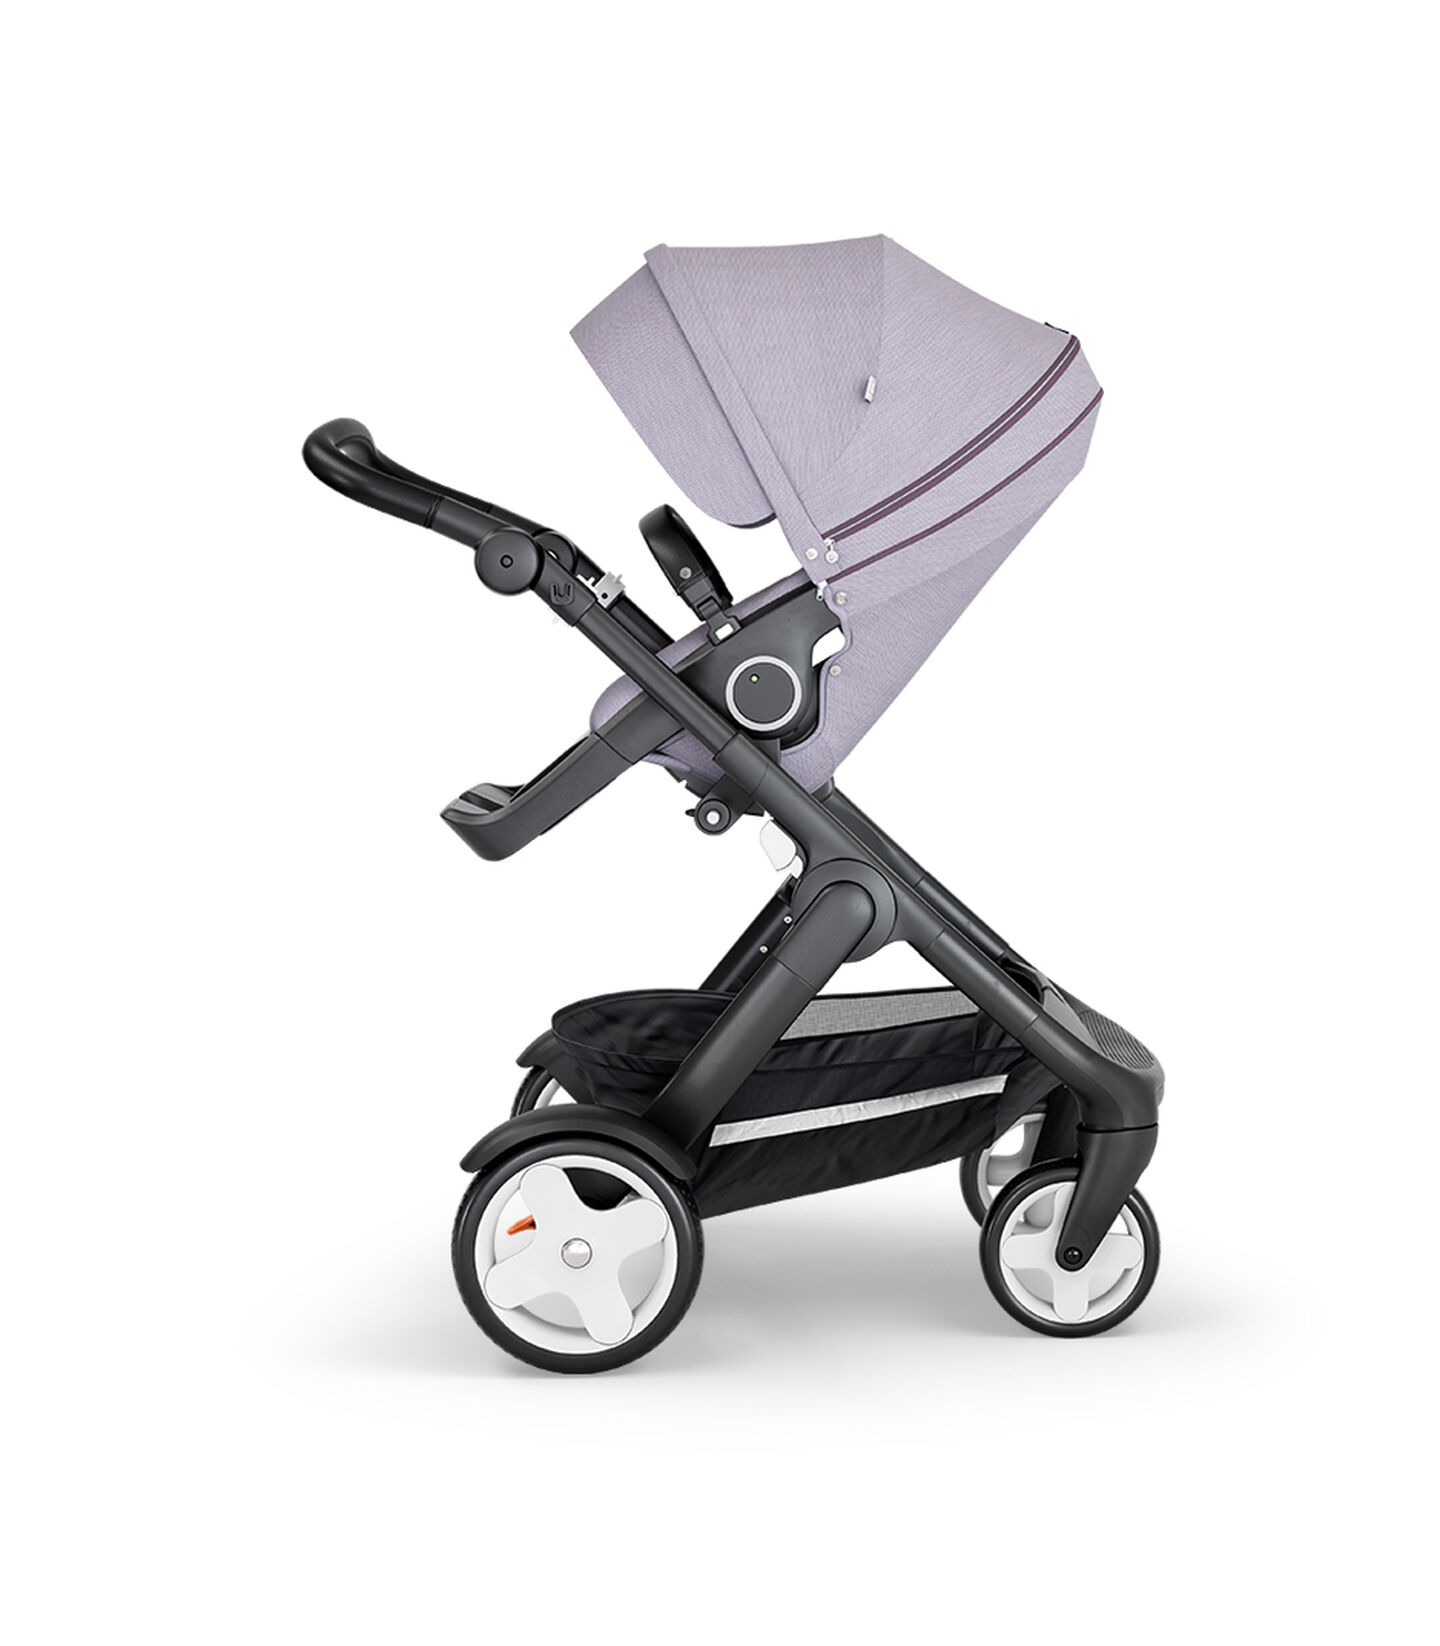 Stokke® Trailz™ with Black Chassis, Black Leatherette and Classic Wheels. Stokke® Stroller Seat, Brushed Lilac